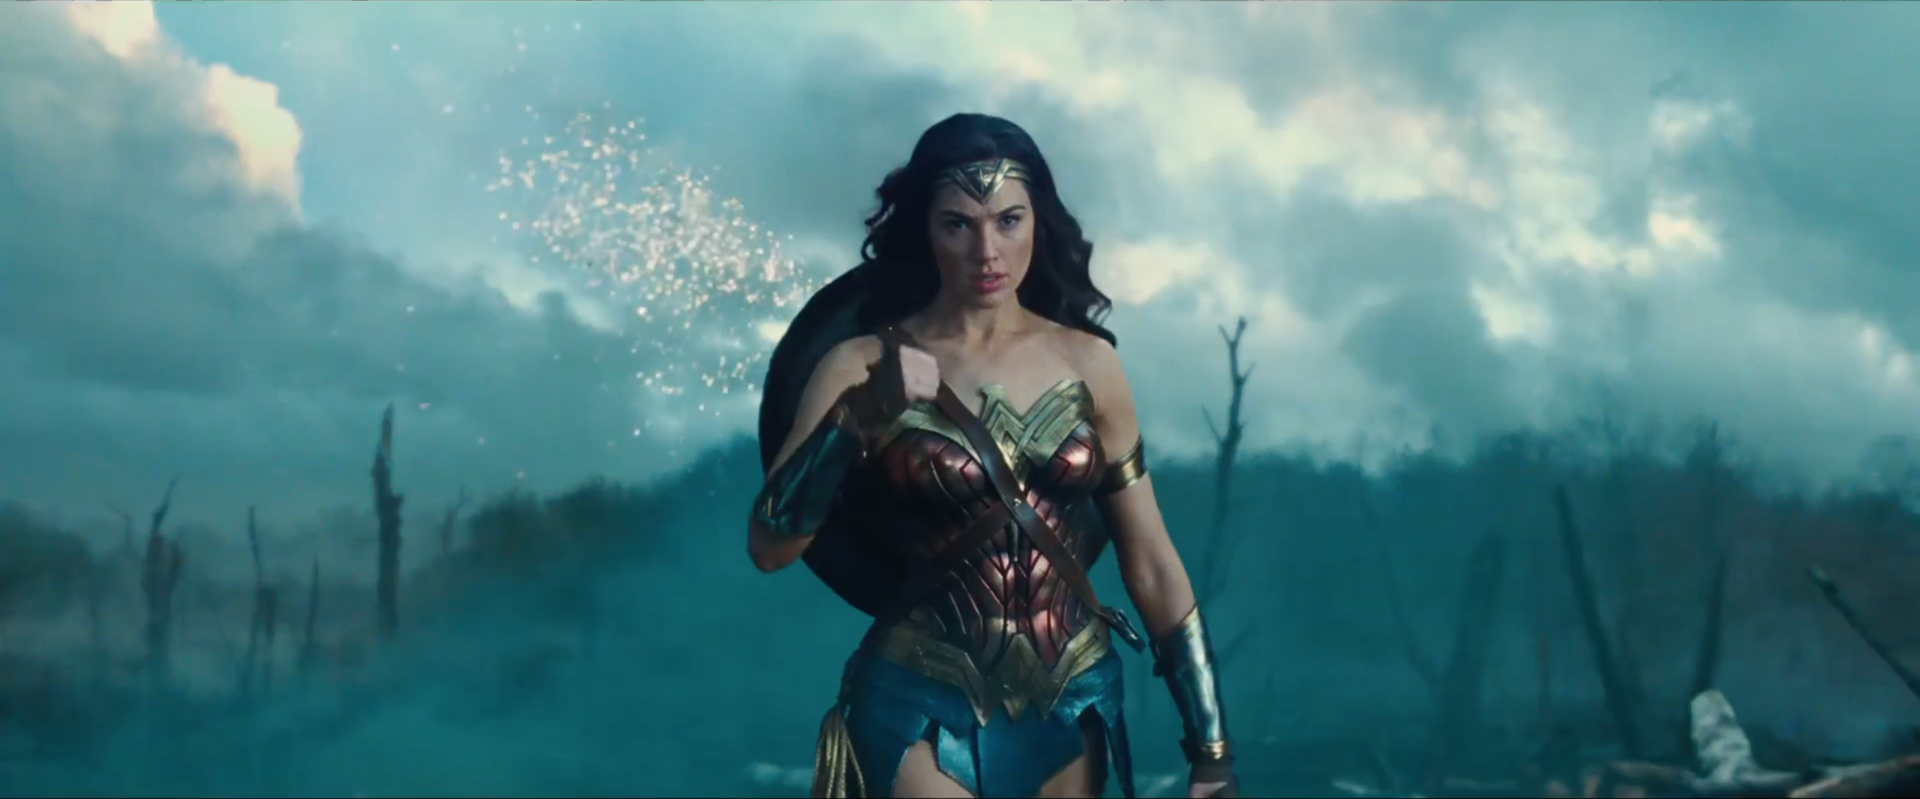 wonder woman film 2017 wikipedia